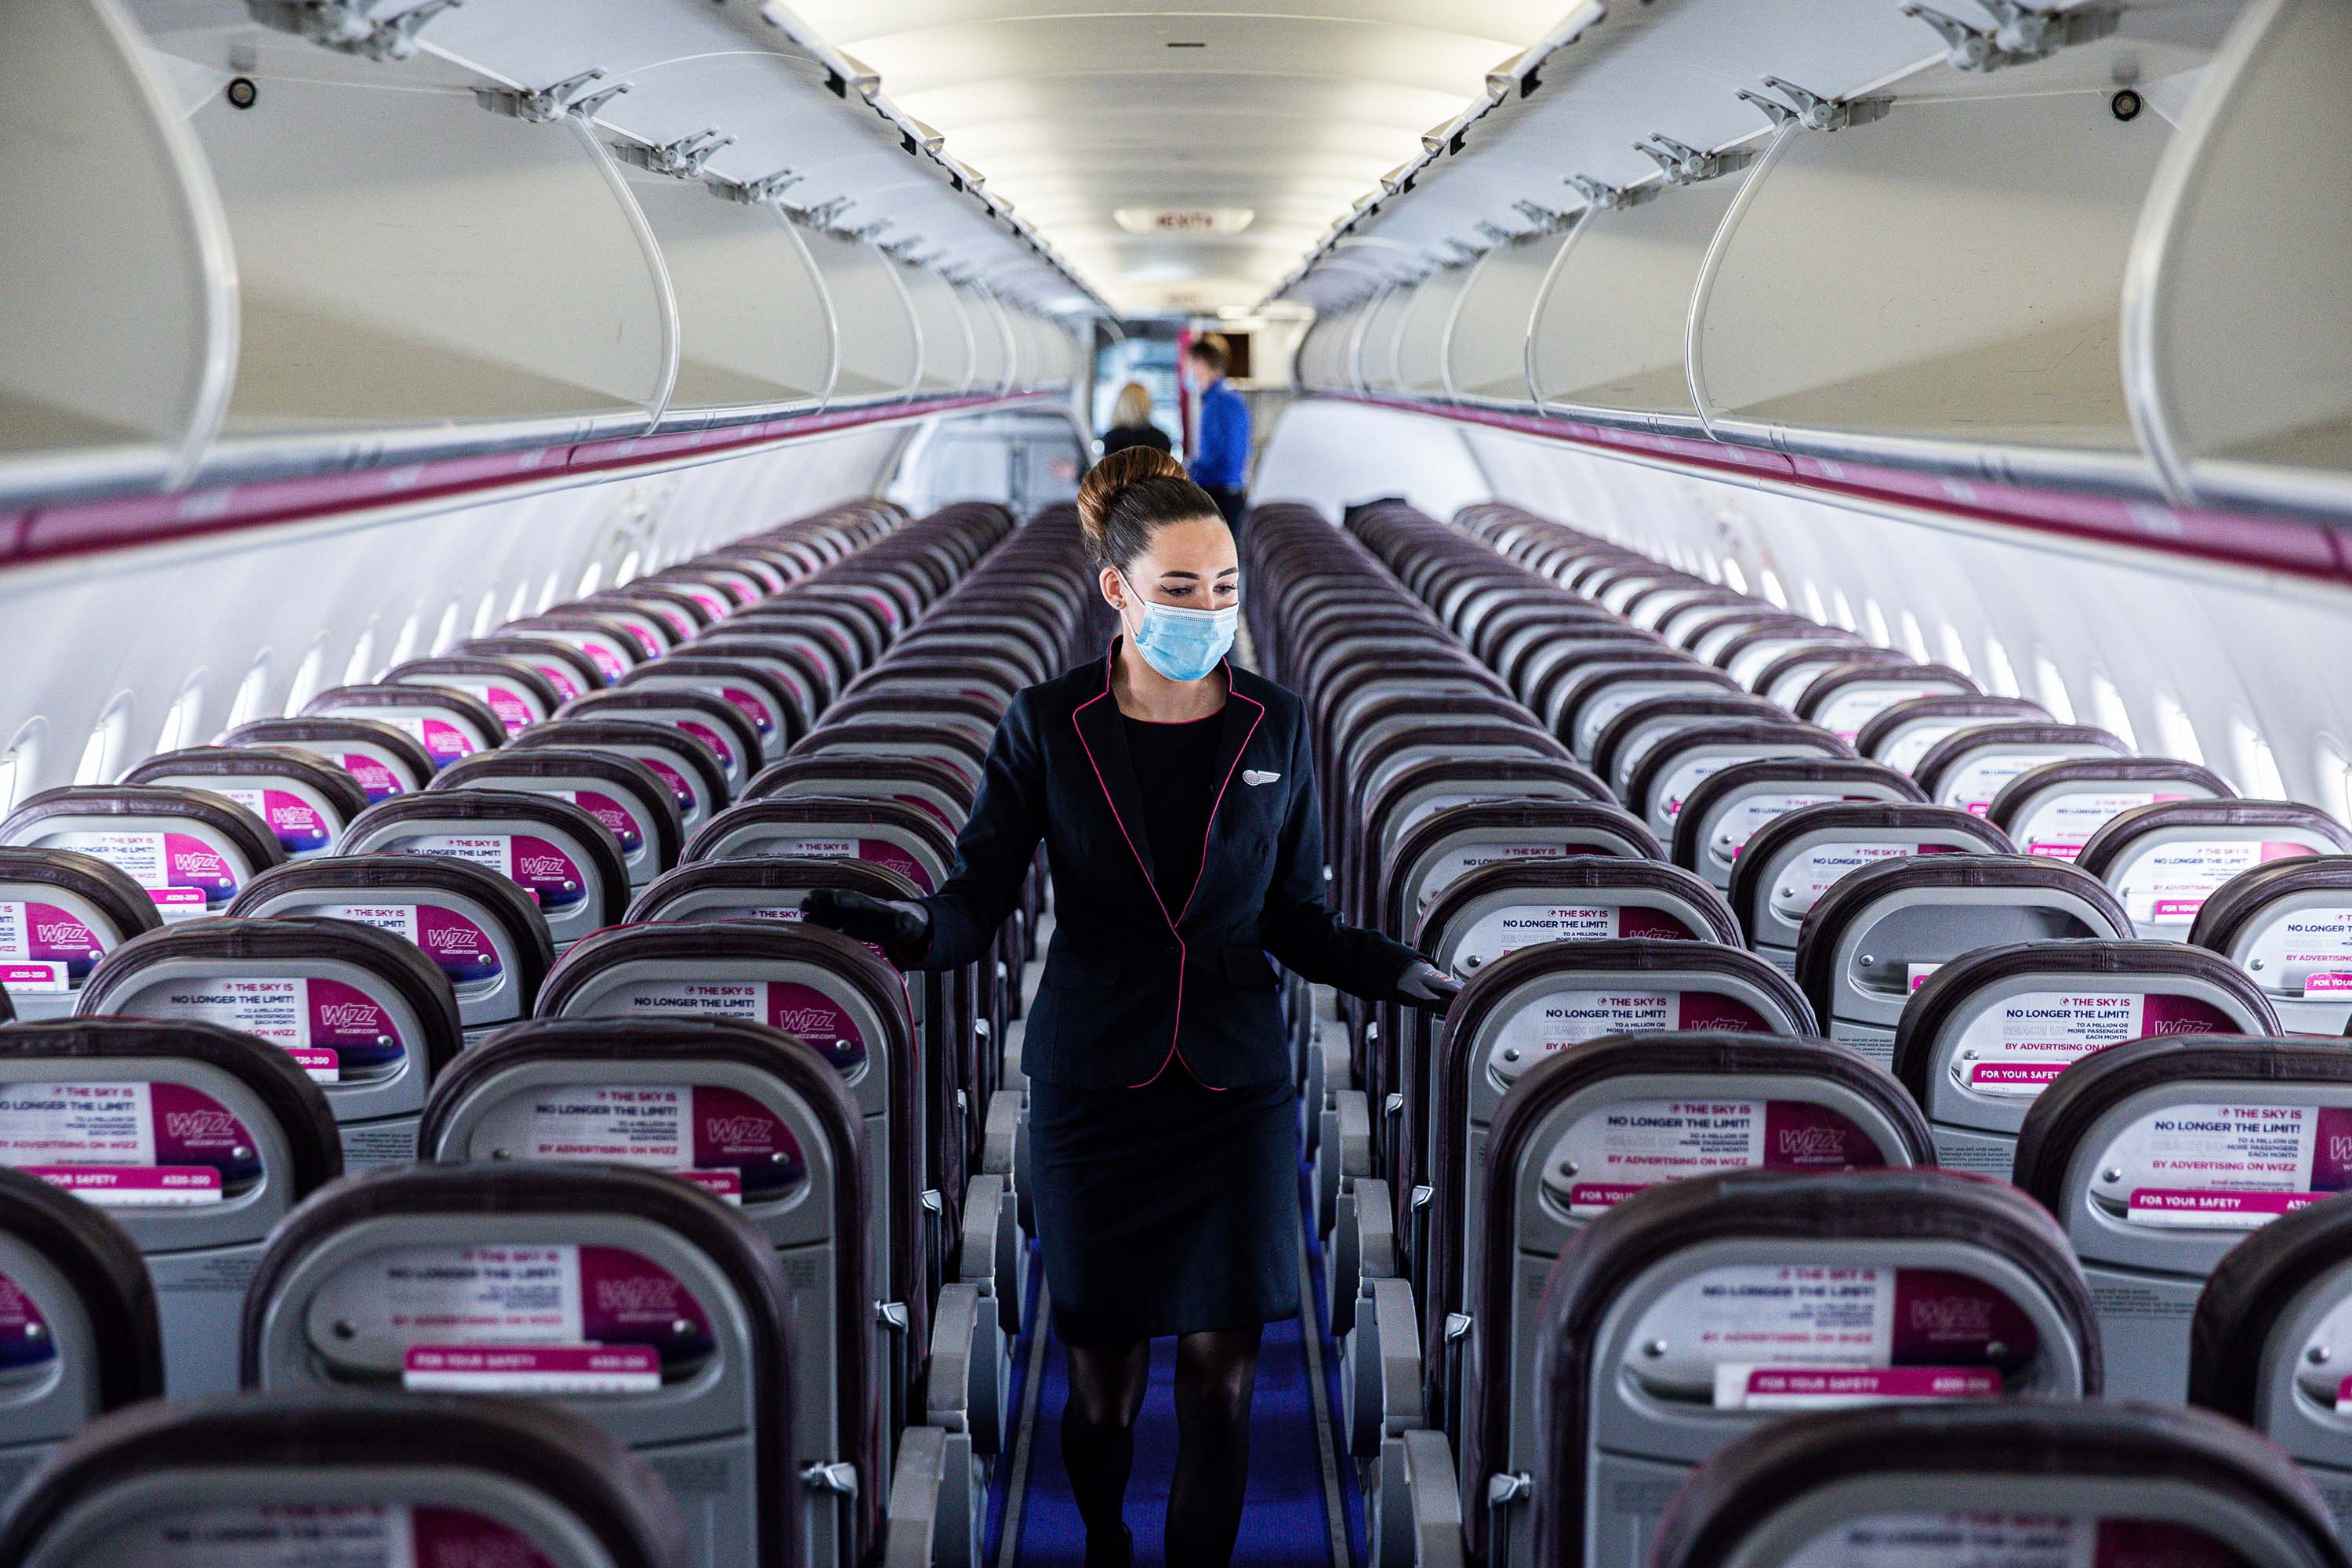 A member of the cabin crew checks cabin seating ahead of a Wizz Air flight at Liszt Ferenc airport in Budapest, Hungary, on May 25.